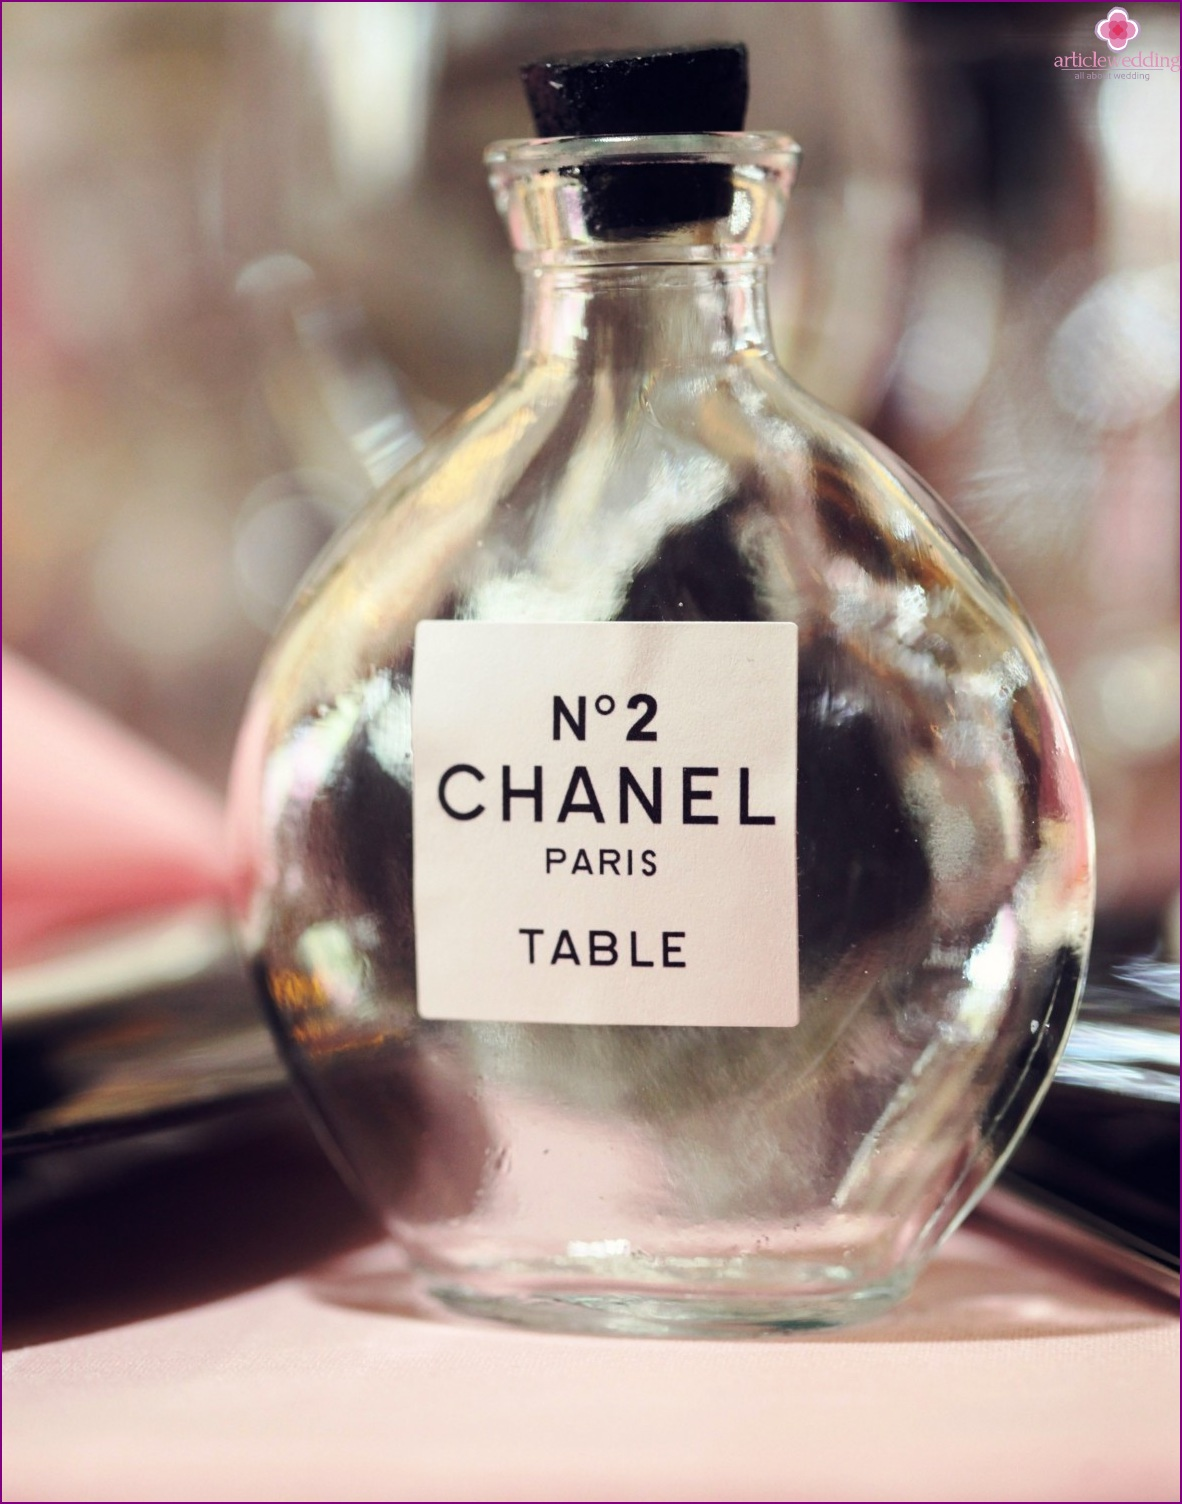 Chanel-style wedding table numbers